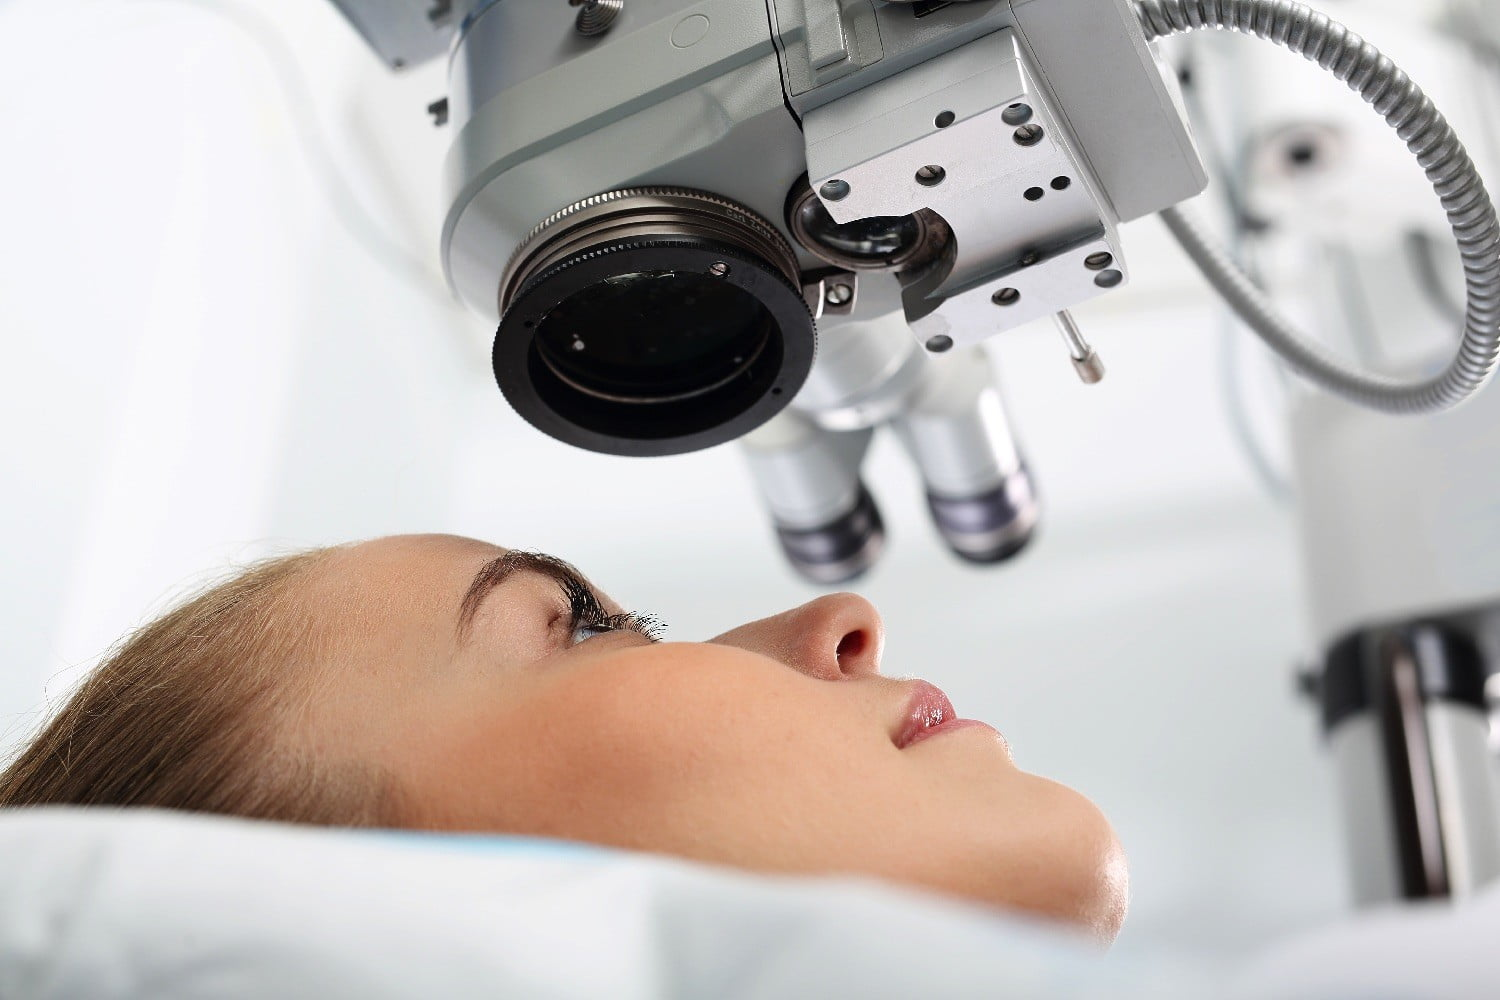 A new laser eye surgery fixes your vision without any gnarly eyeball slicing